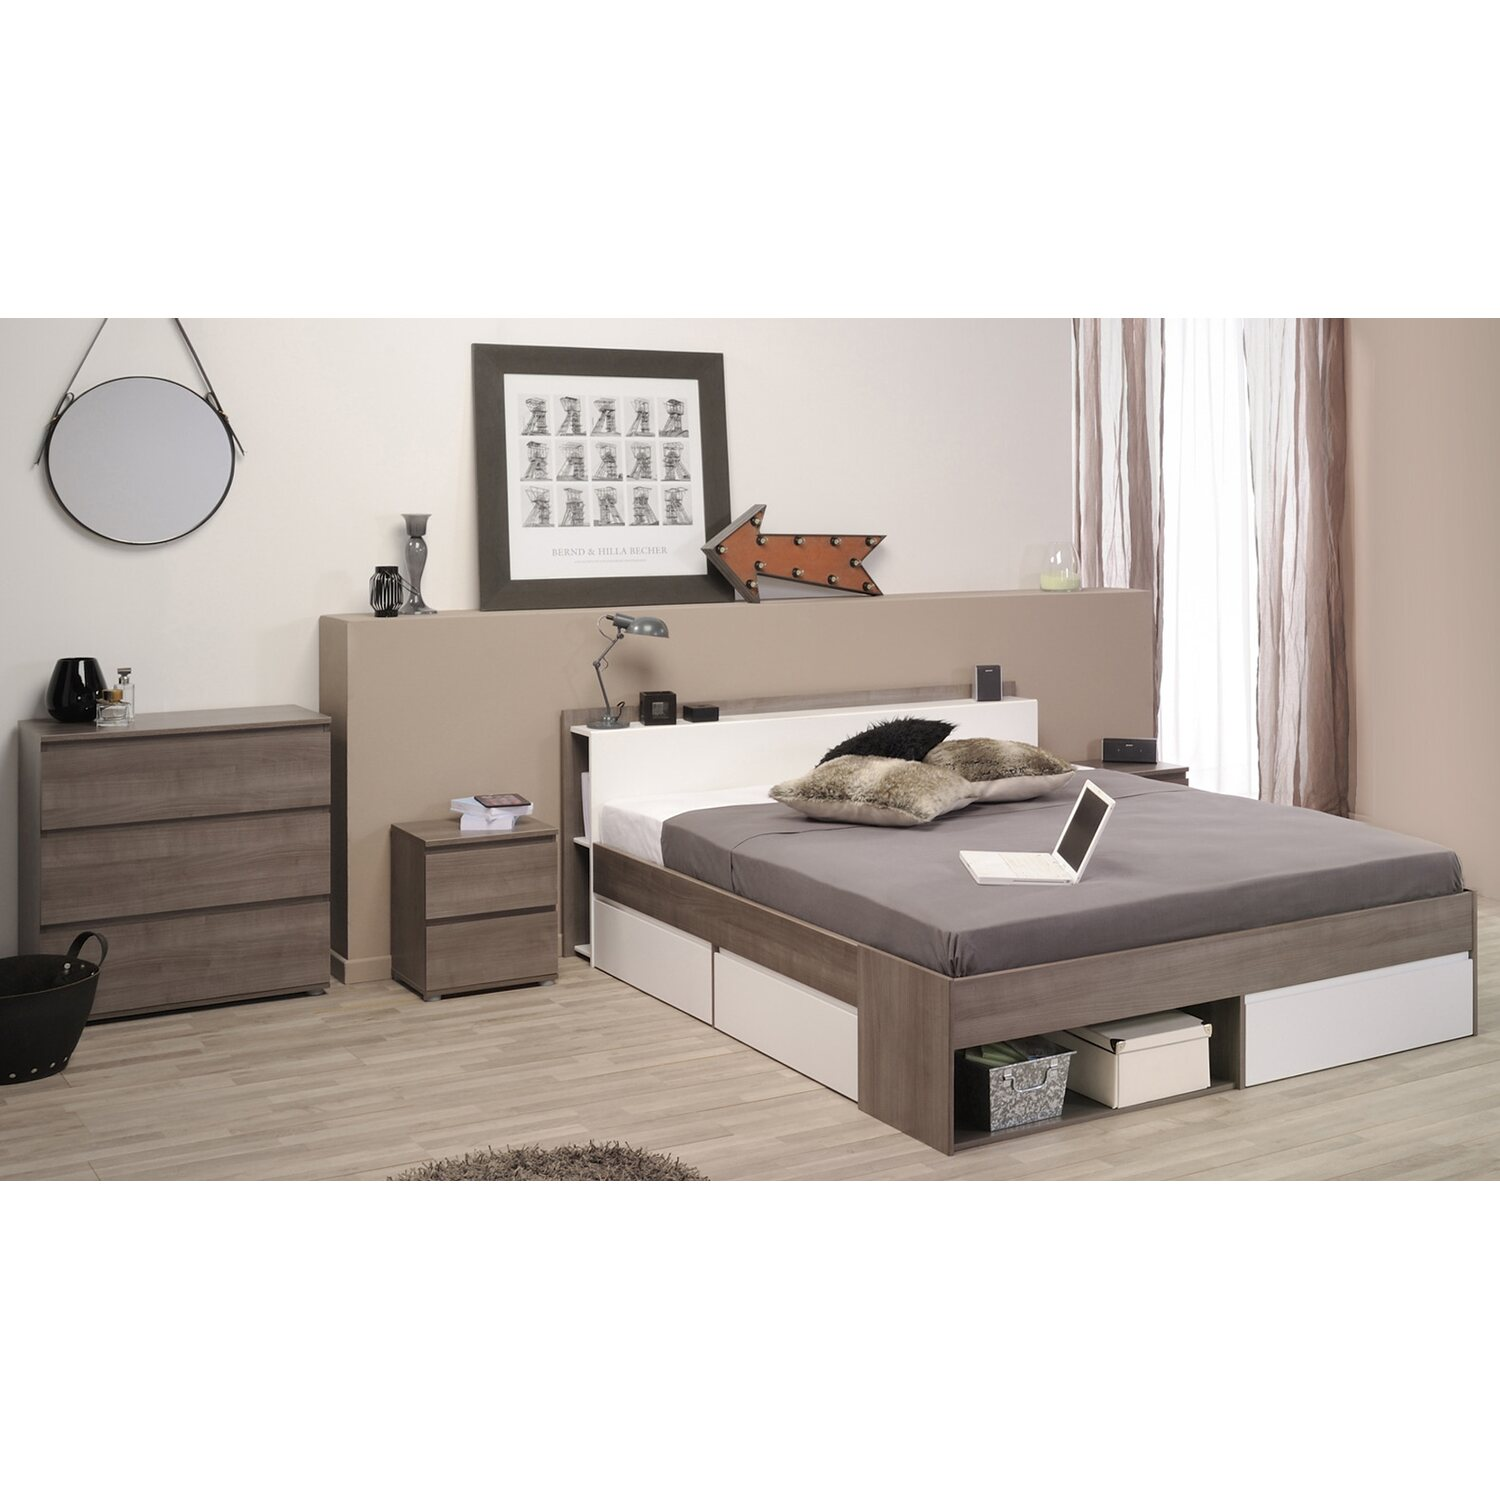 parisot schlafzimmer set most xviii 3 teilig eiche wei kaufen bei obi. Black Bedroom Furniture Sets. Home Design Ideas